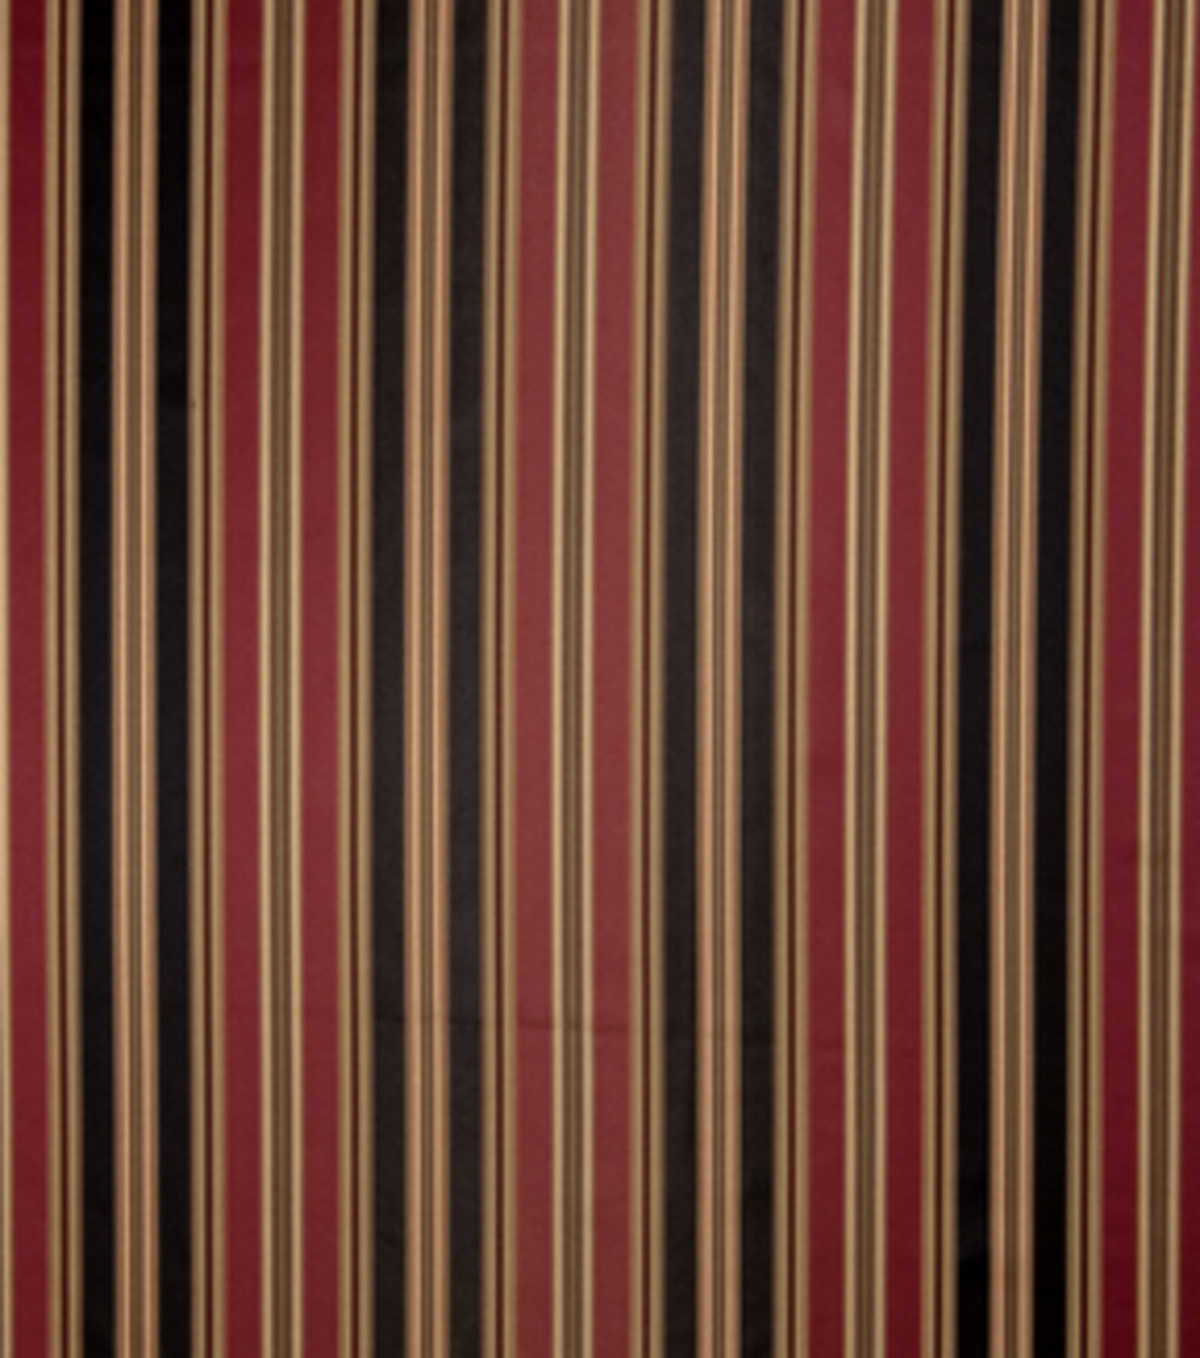 Home Decor 8\u0022x8\u0022 Fabric Swatch-Print Fabric Eaton Square Cuisine Crimson